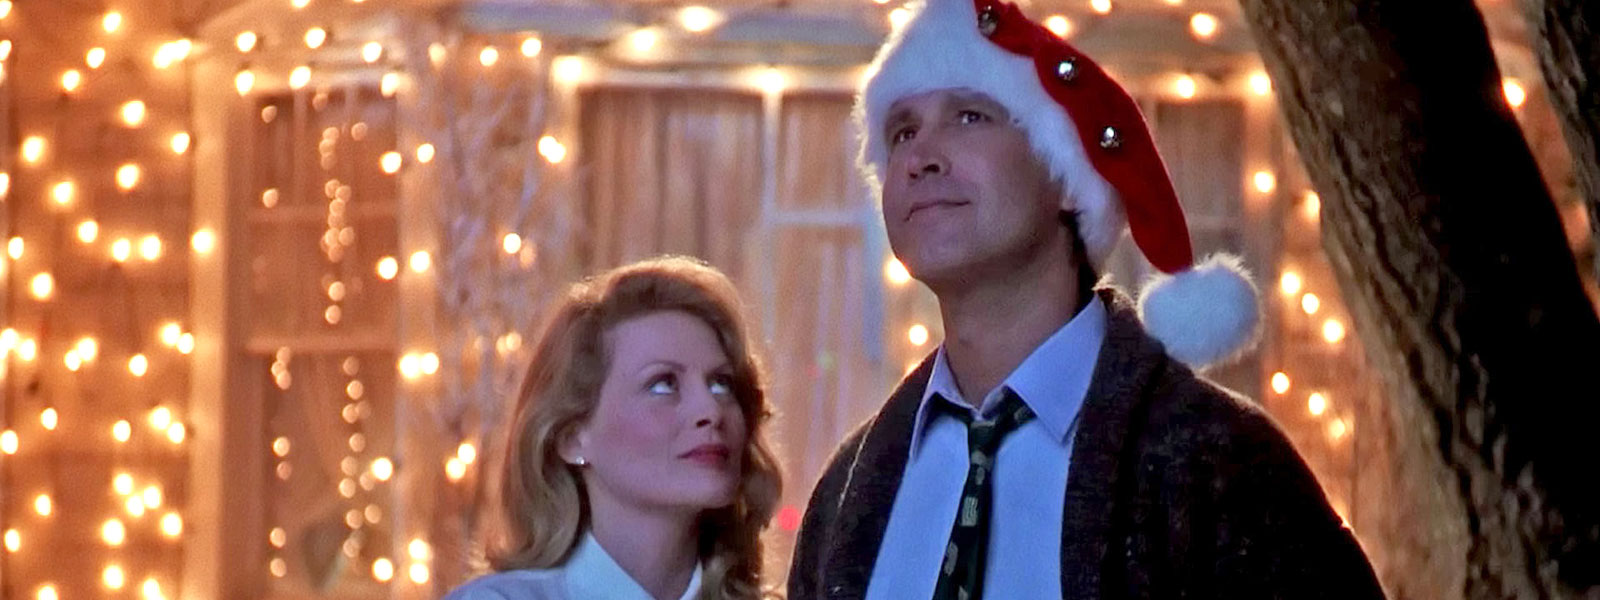 Creating The Sights And Sounds Of Two Christmas Film